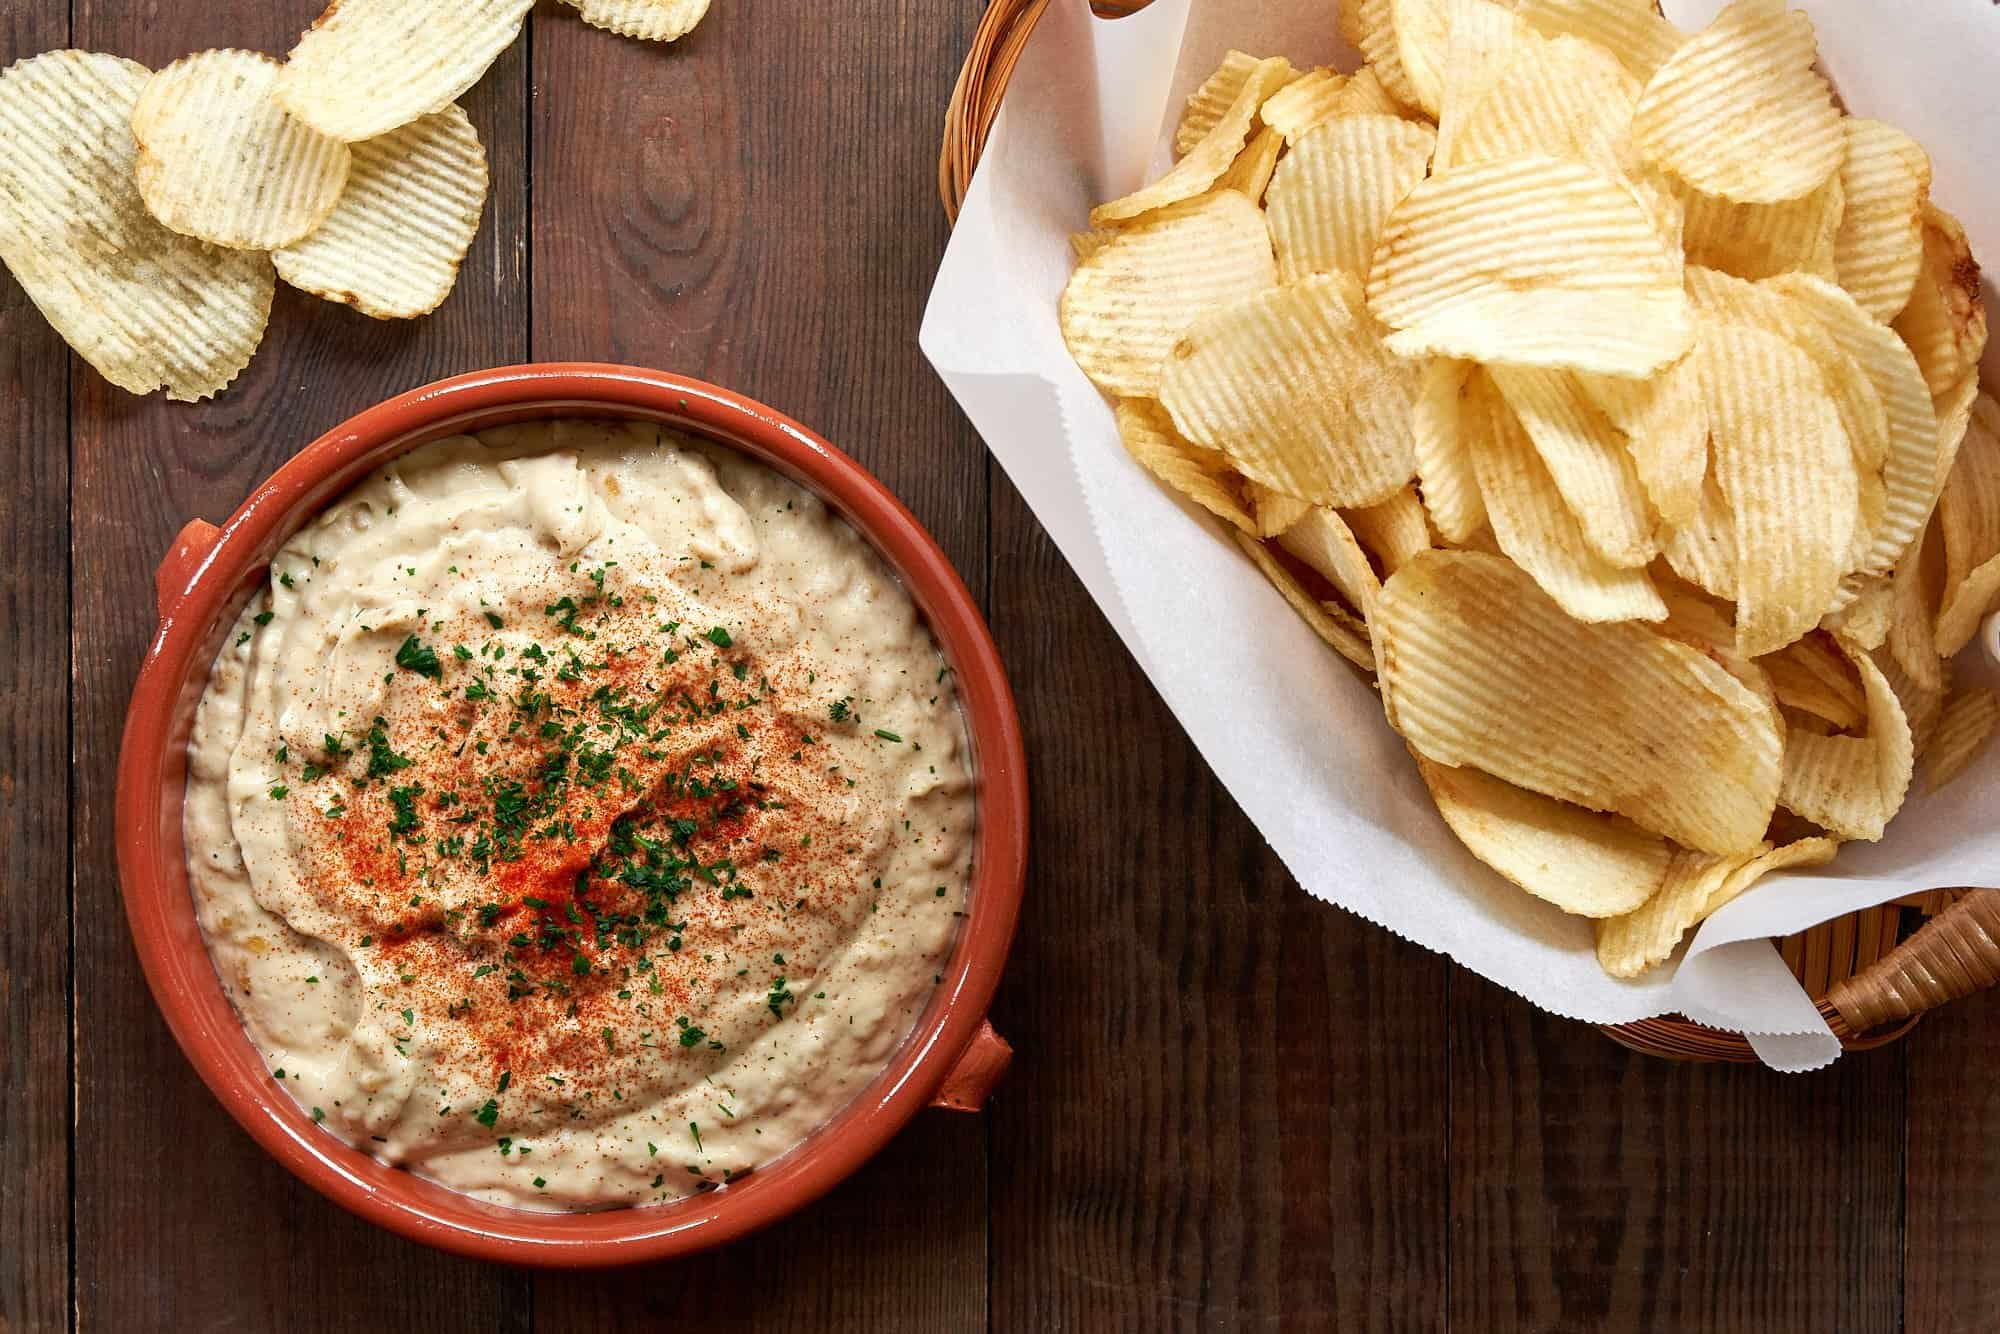 A few culinary trick turn some basic ingredients into this ultra-creamy and flavorful plant-based French onion dip.